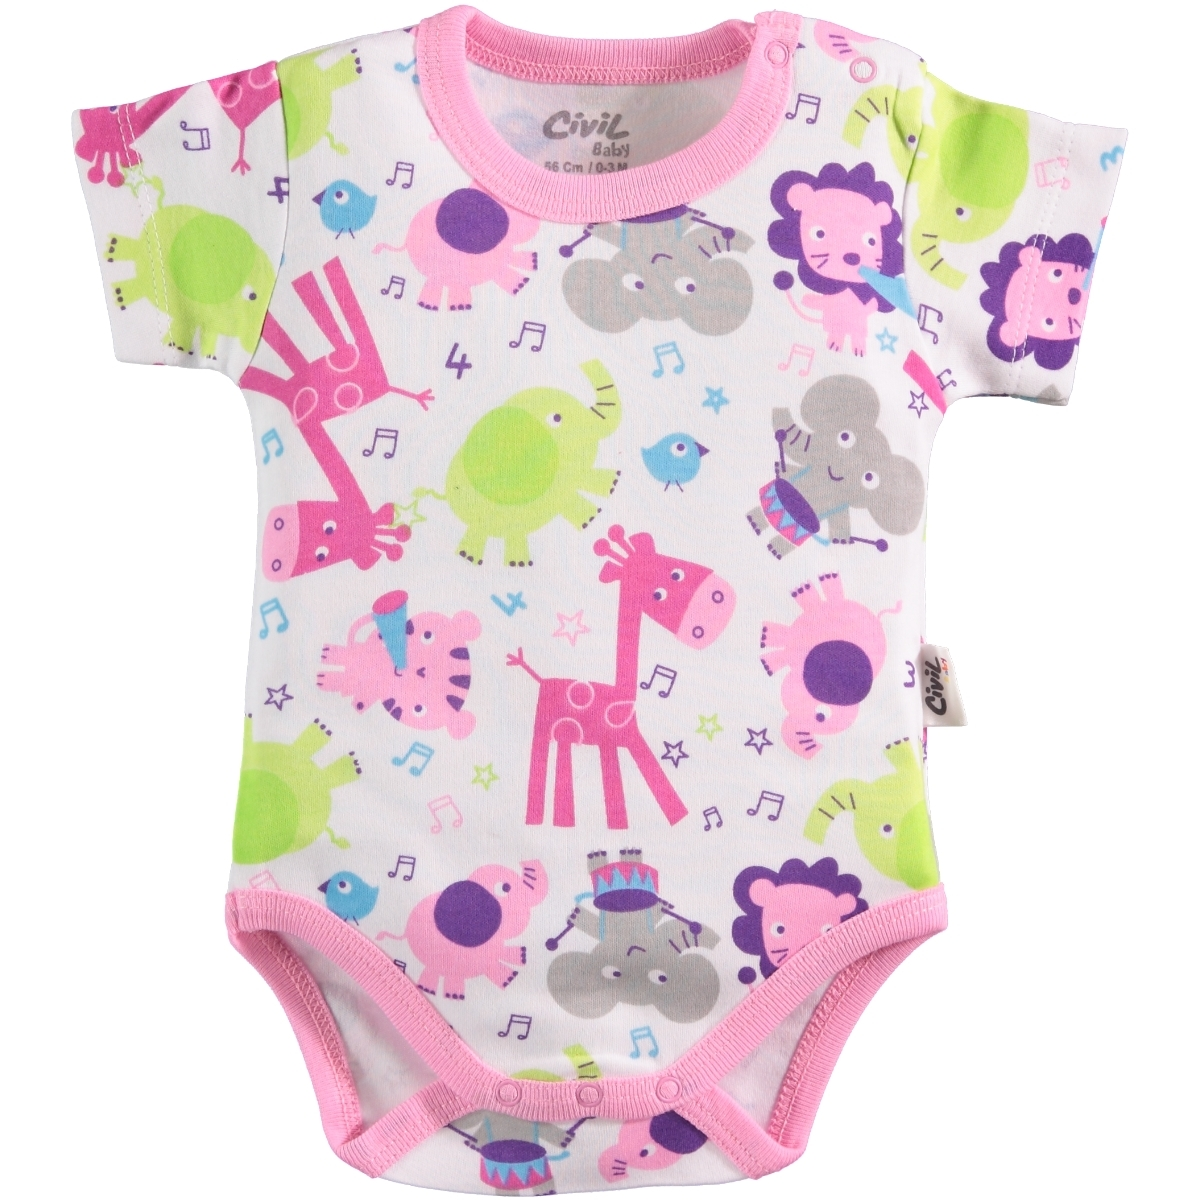 Civil Baby 0-24 Months Baby Pink Bodysuit With Snaps